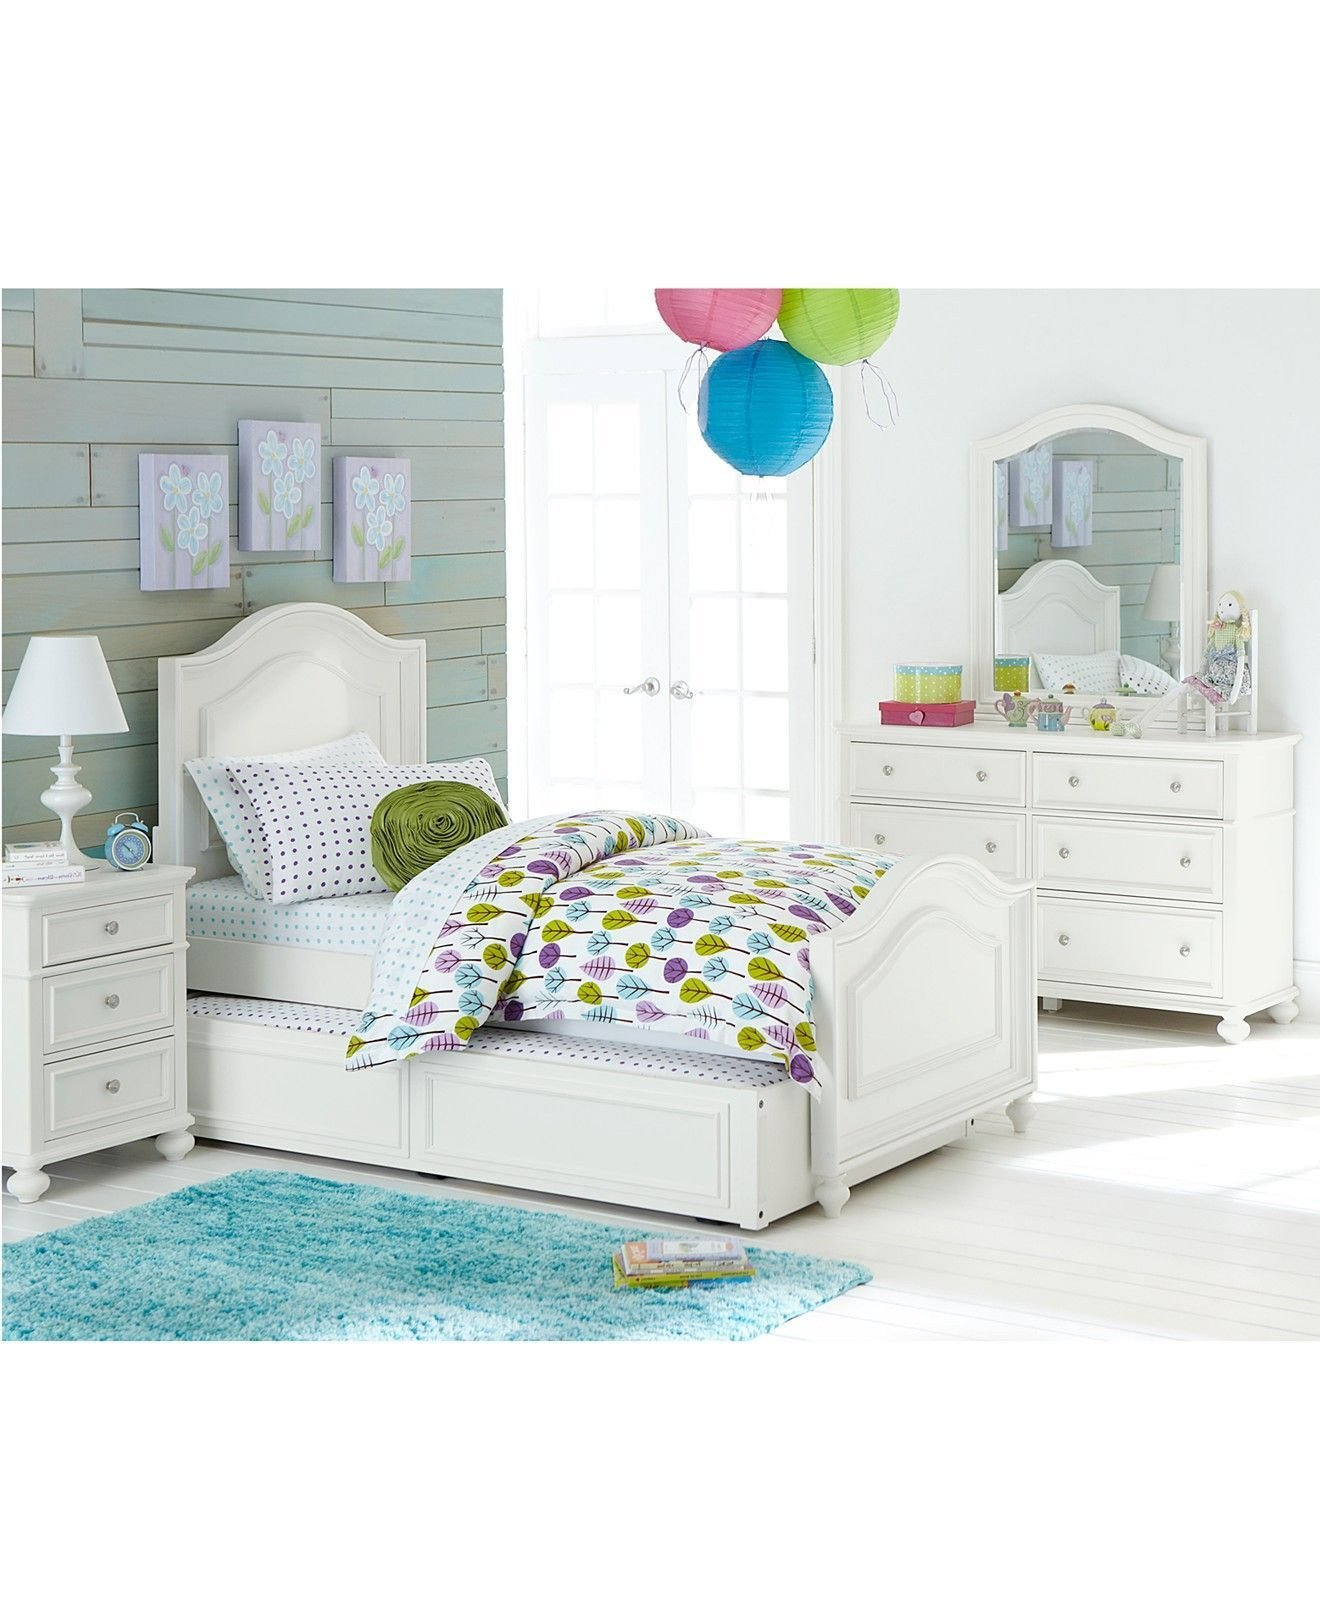 Childrens Bedroom Furniture Set Fresh Bedroom Dresser Kids Roseville Kids Bedroom Furniture 6